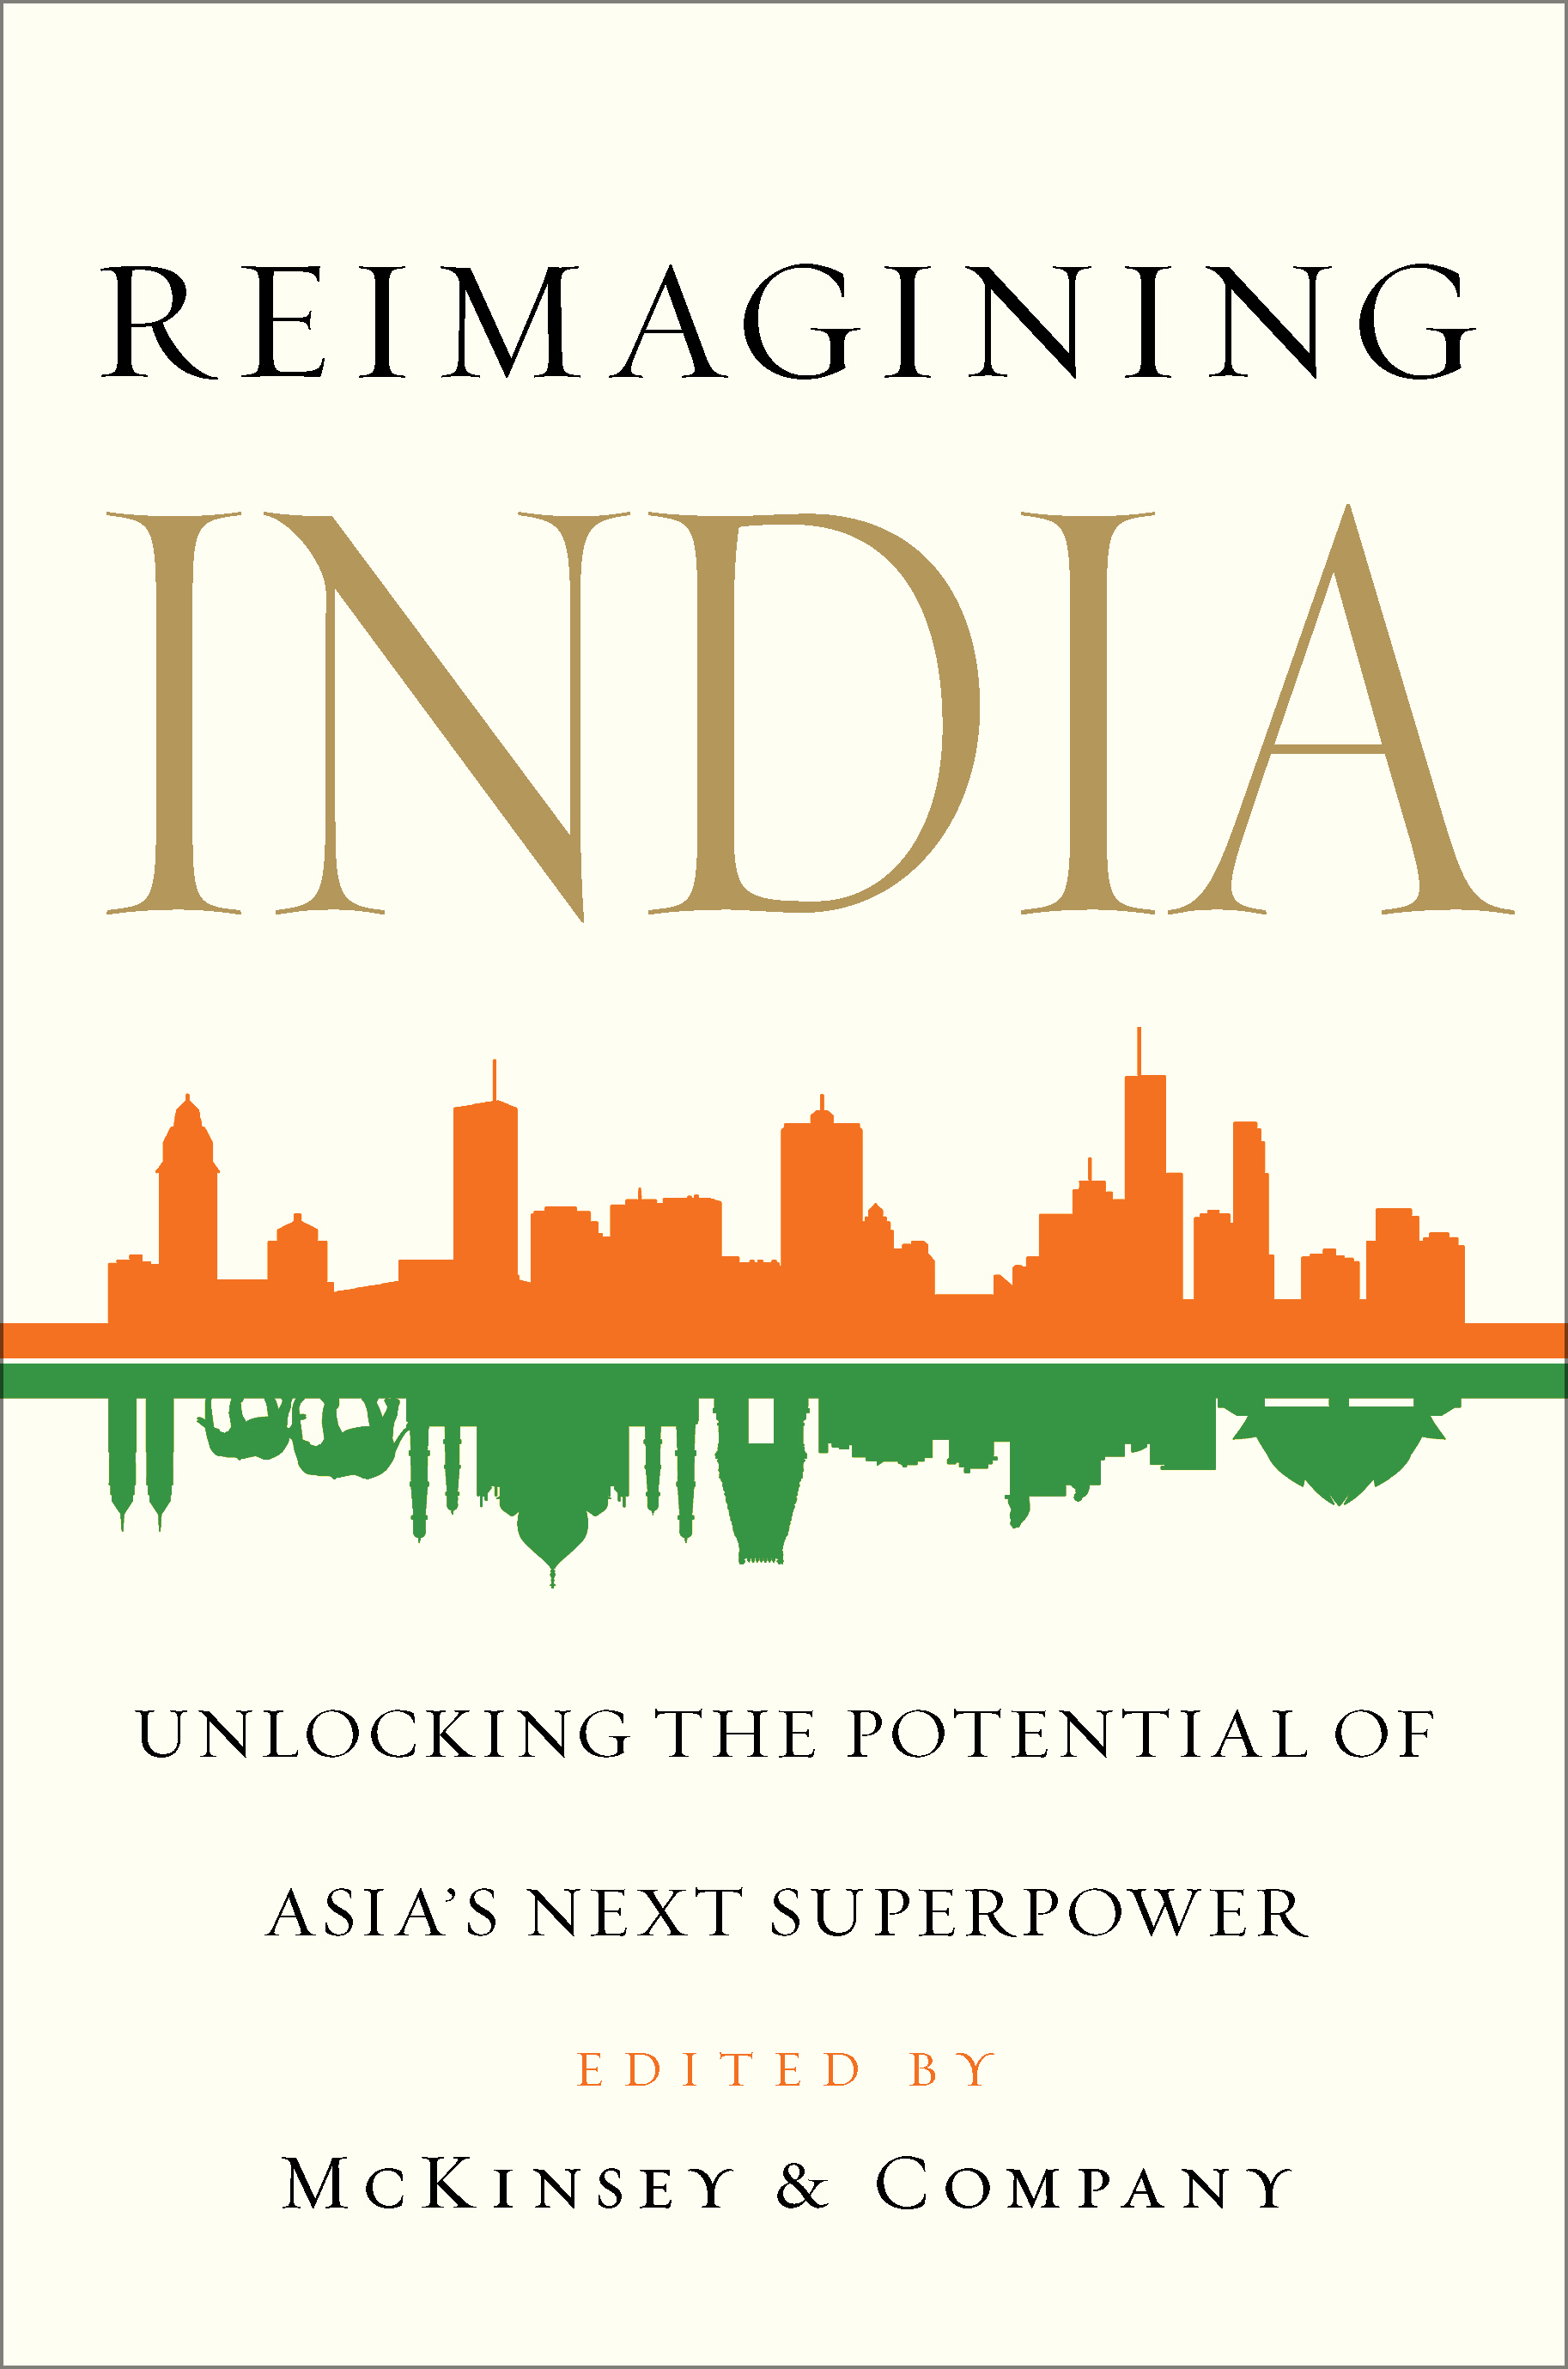 Book Cover Image (jpg): Reimagining India